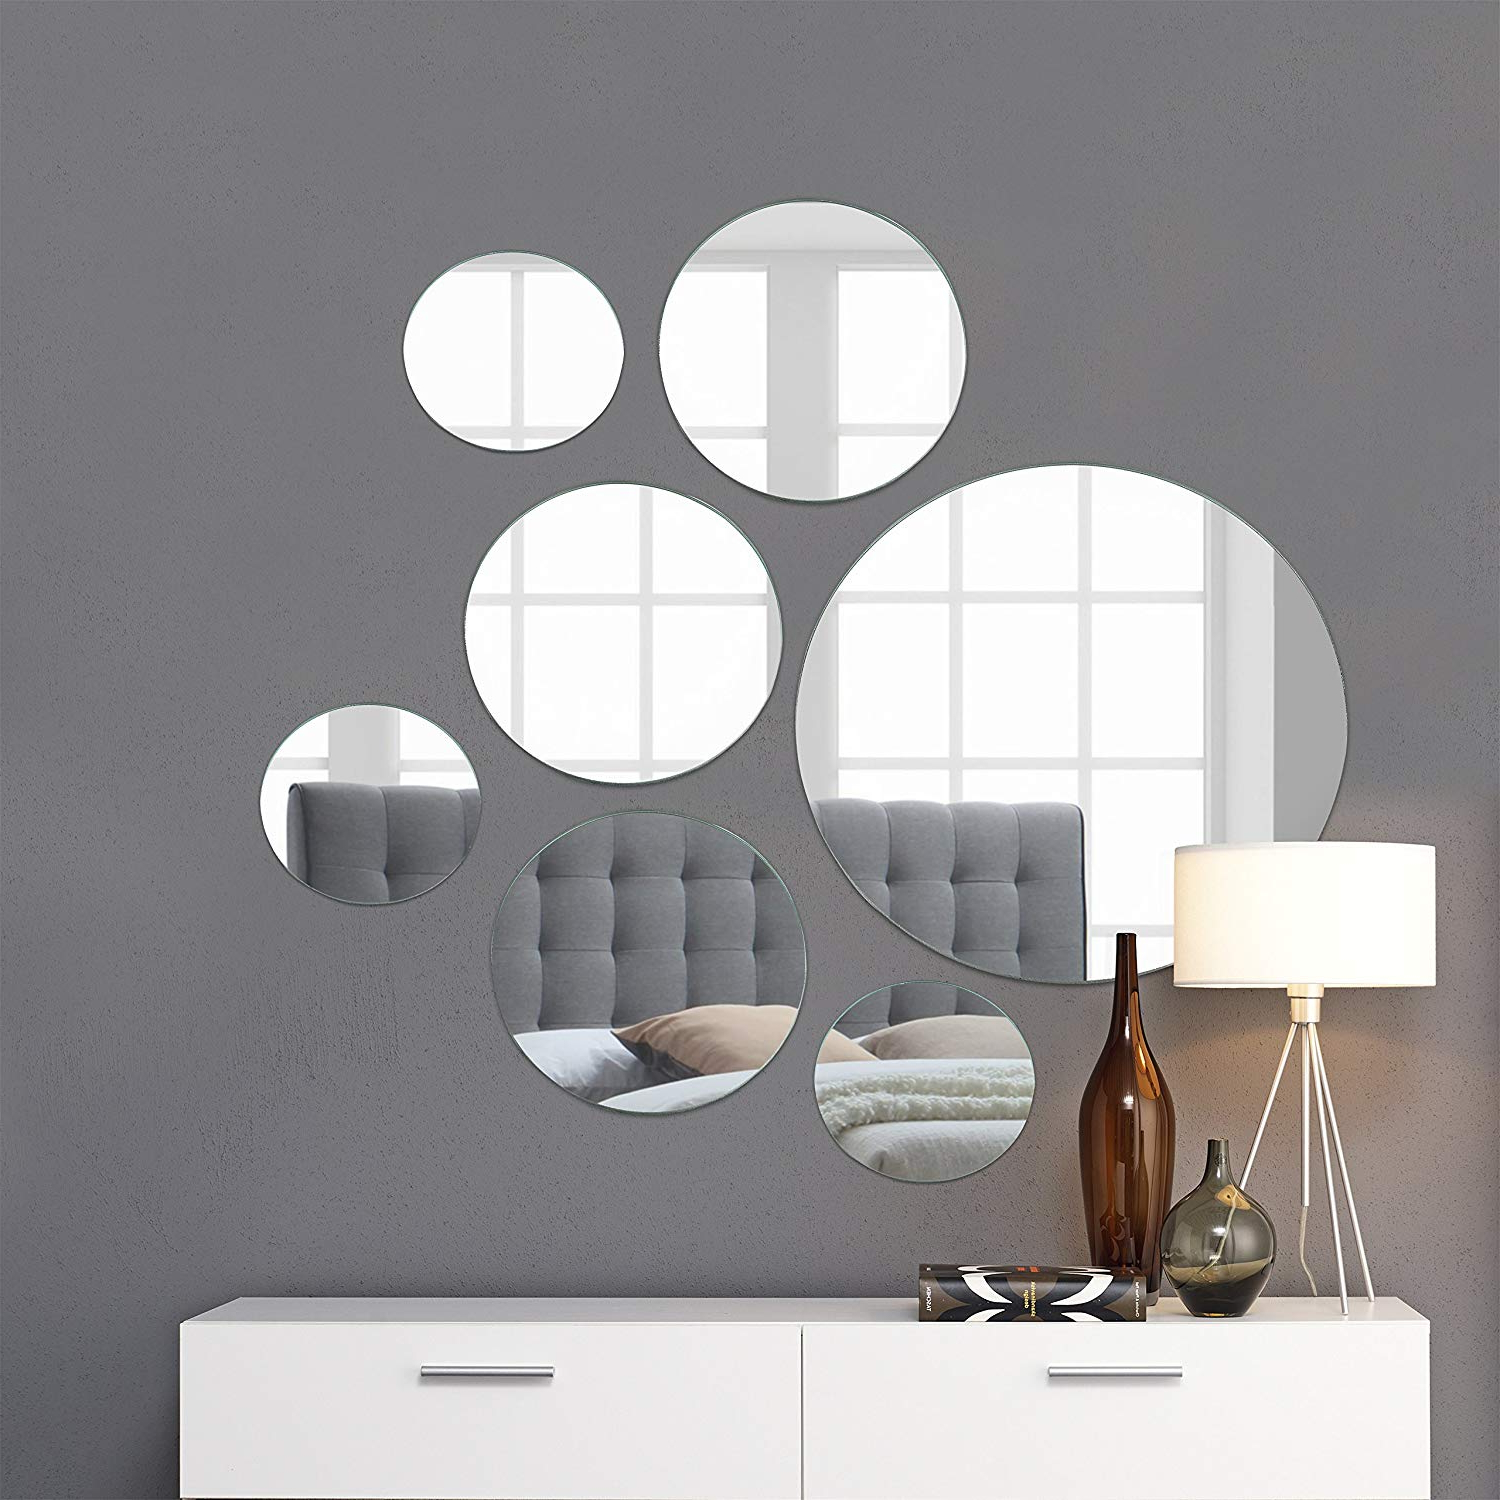 """Well Known Light In The Dark Medium Round Mirror Wall Mounted Assorted Sizes (1x10"""",  3x7"""", 3x4"""") – Set Of 7 Round Glass Mirrors Wall Decoration For Living Room, Pertaining To Wall Mirrors (View 1 of 20)"""